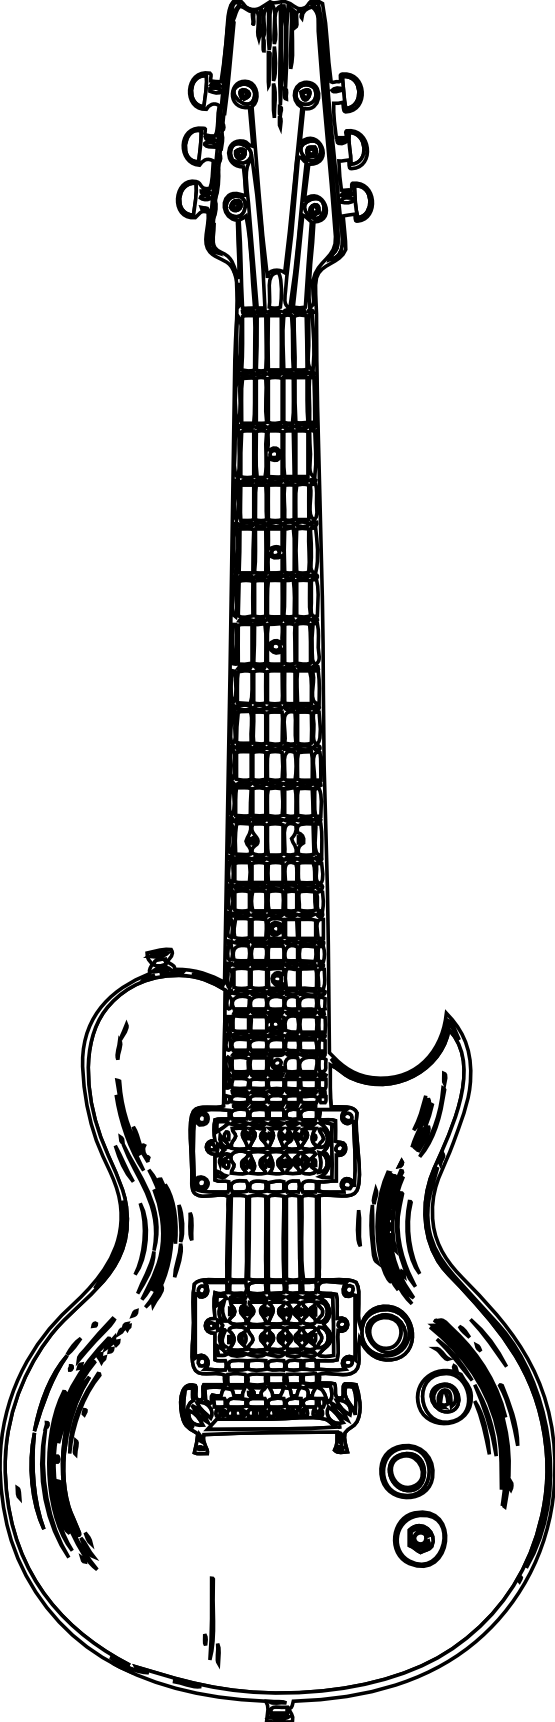 Wooden Guitar Black White Line Art Christmas Xmas Music Scalable Vector Graphics Svg Inkscape Adobe Illustrator Clip Coloring Books Digital Stamps Art Clipart